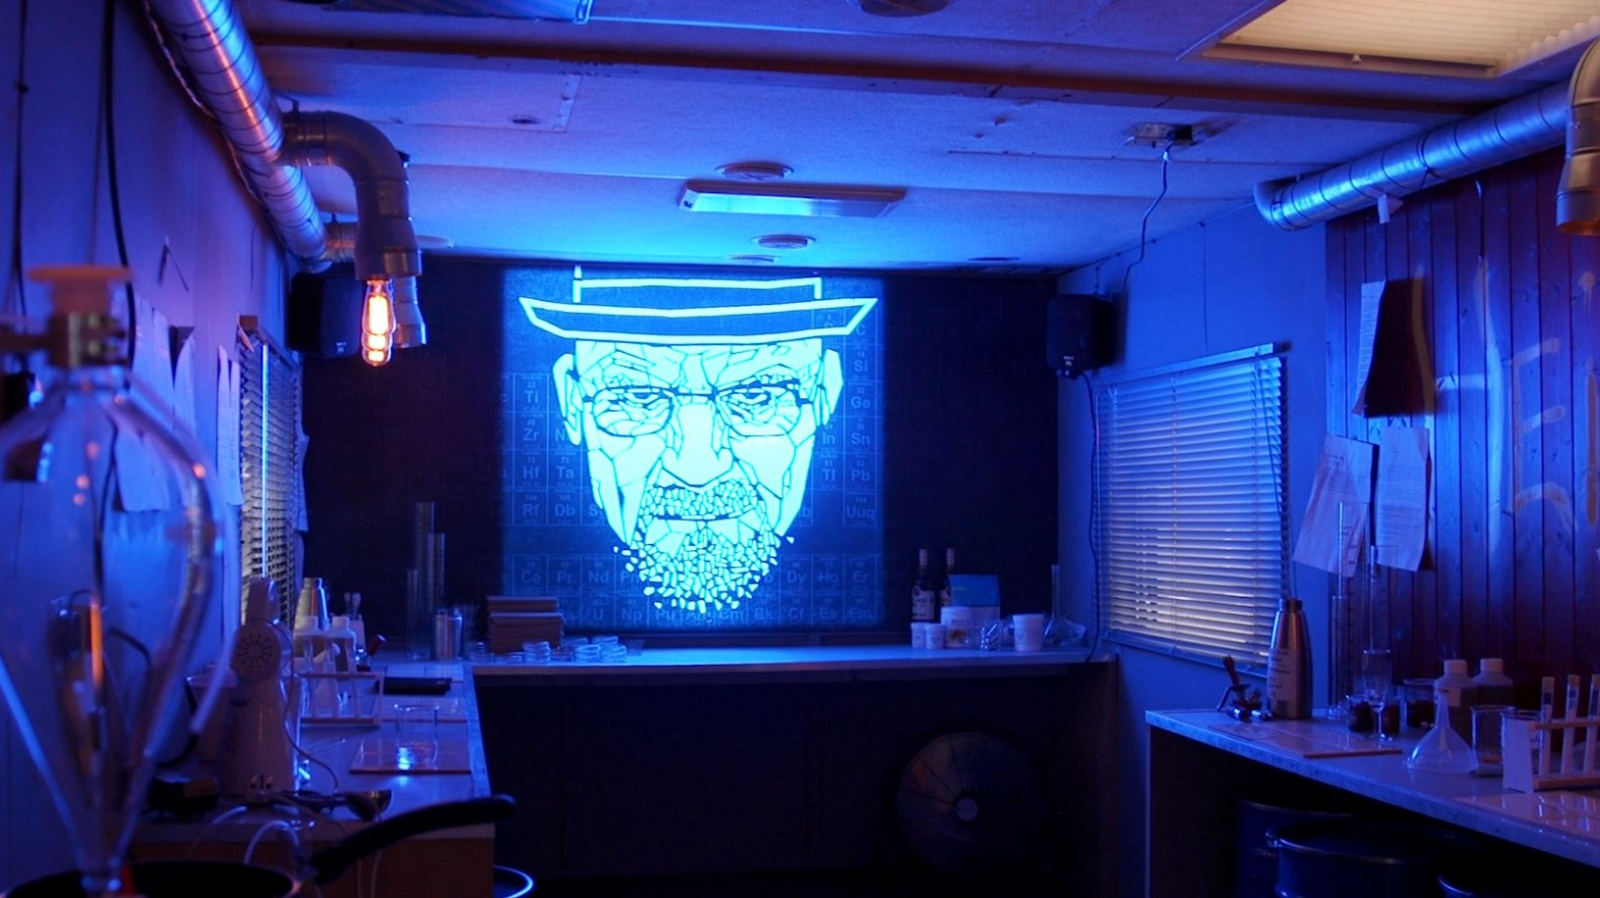 Breaking Bad pop-up event in London